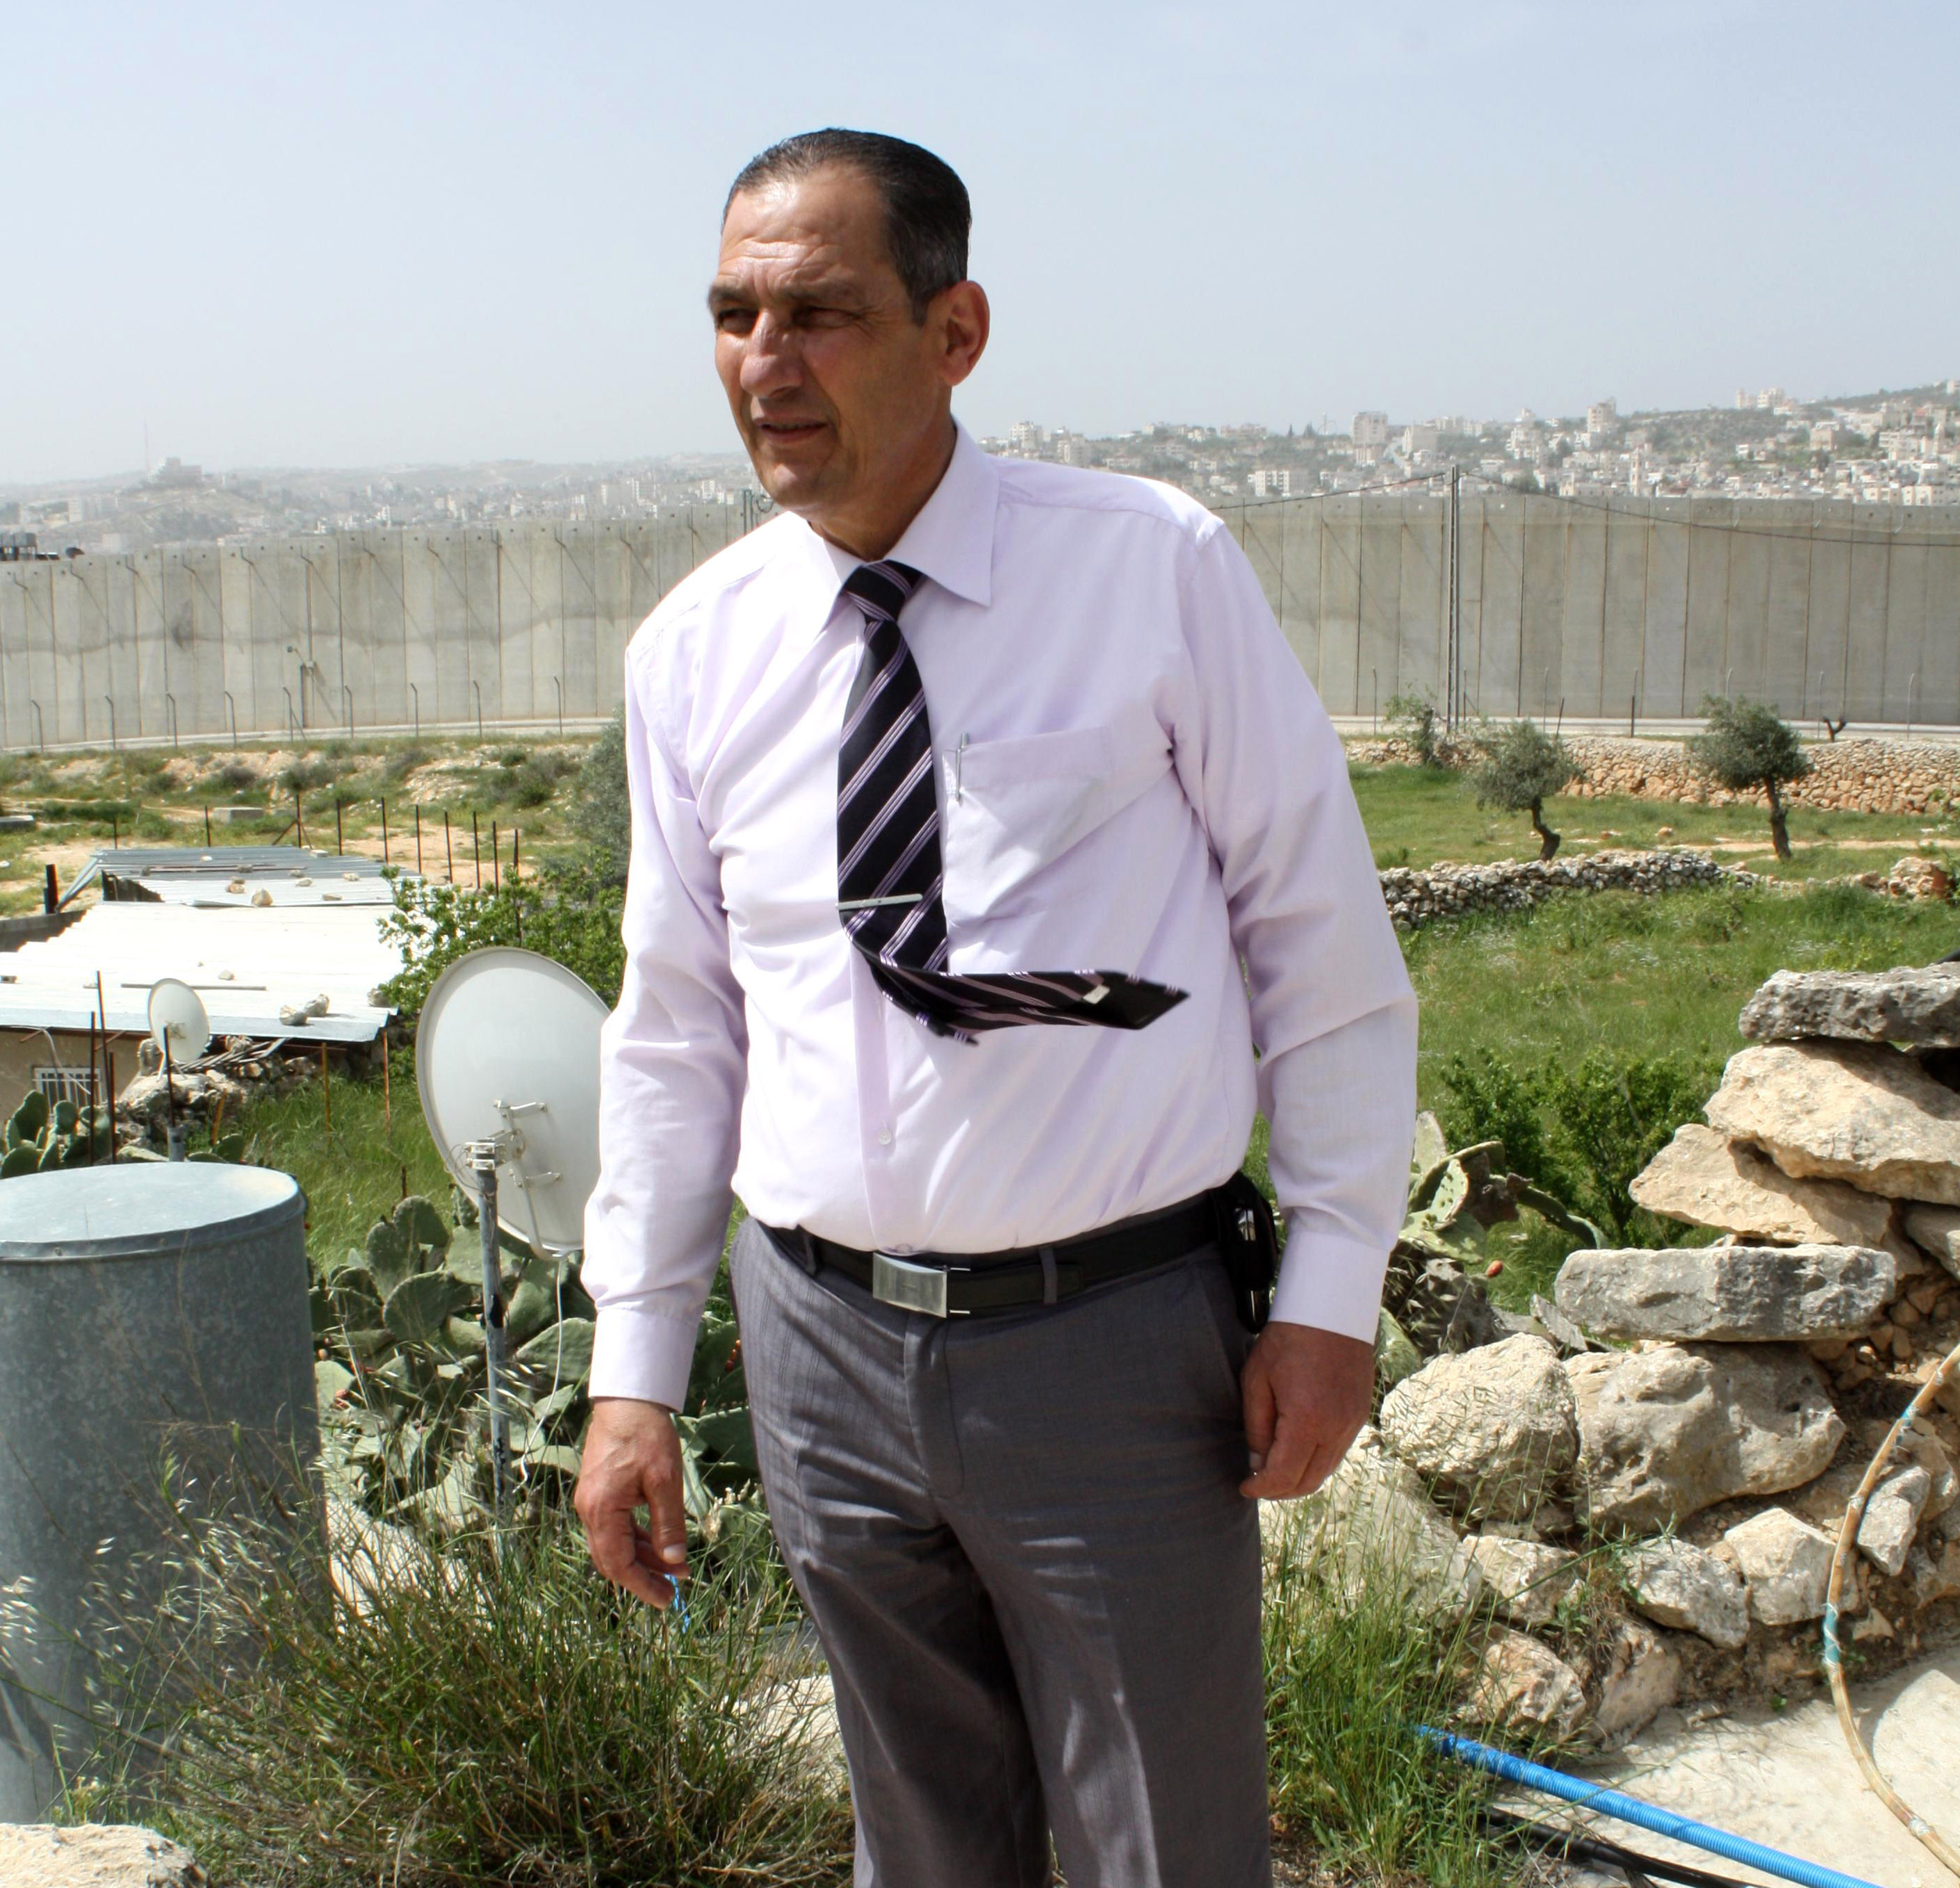 Fuad Ahmed Jado stands in front of his house in Tantour, East Jerusalem, where 80 residents have been cut off from hospitals in the West Bank by the Separation Wall